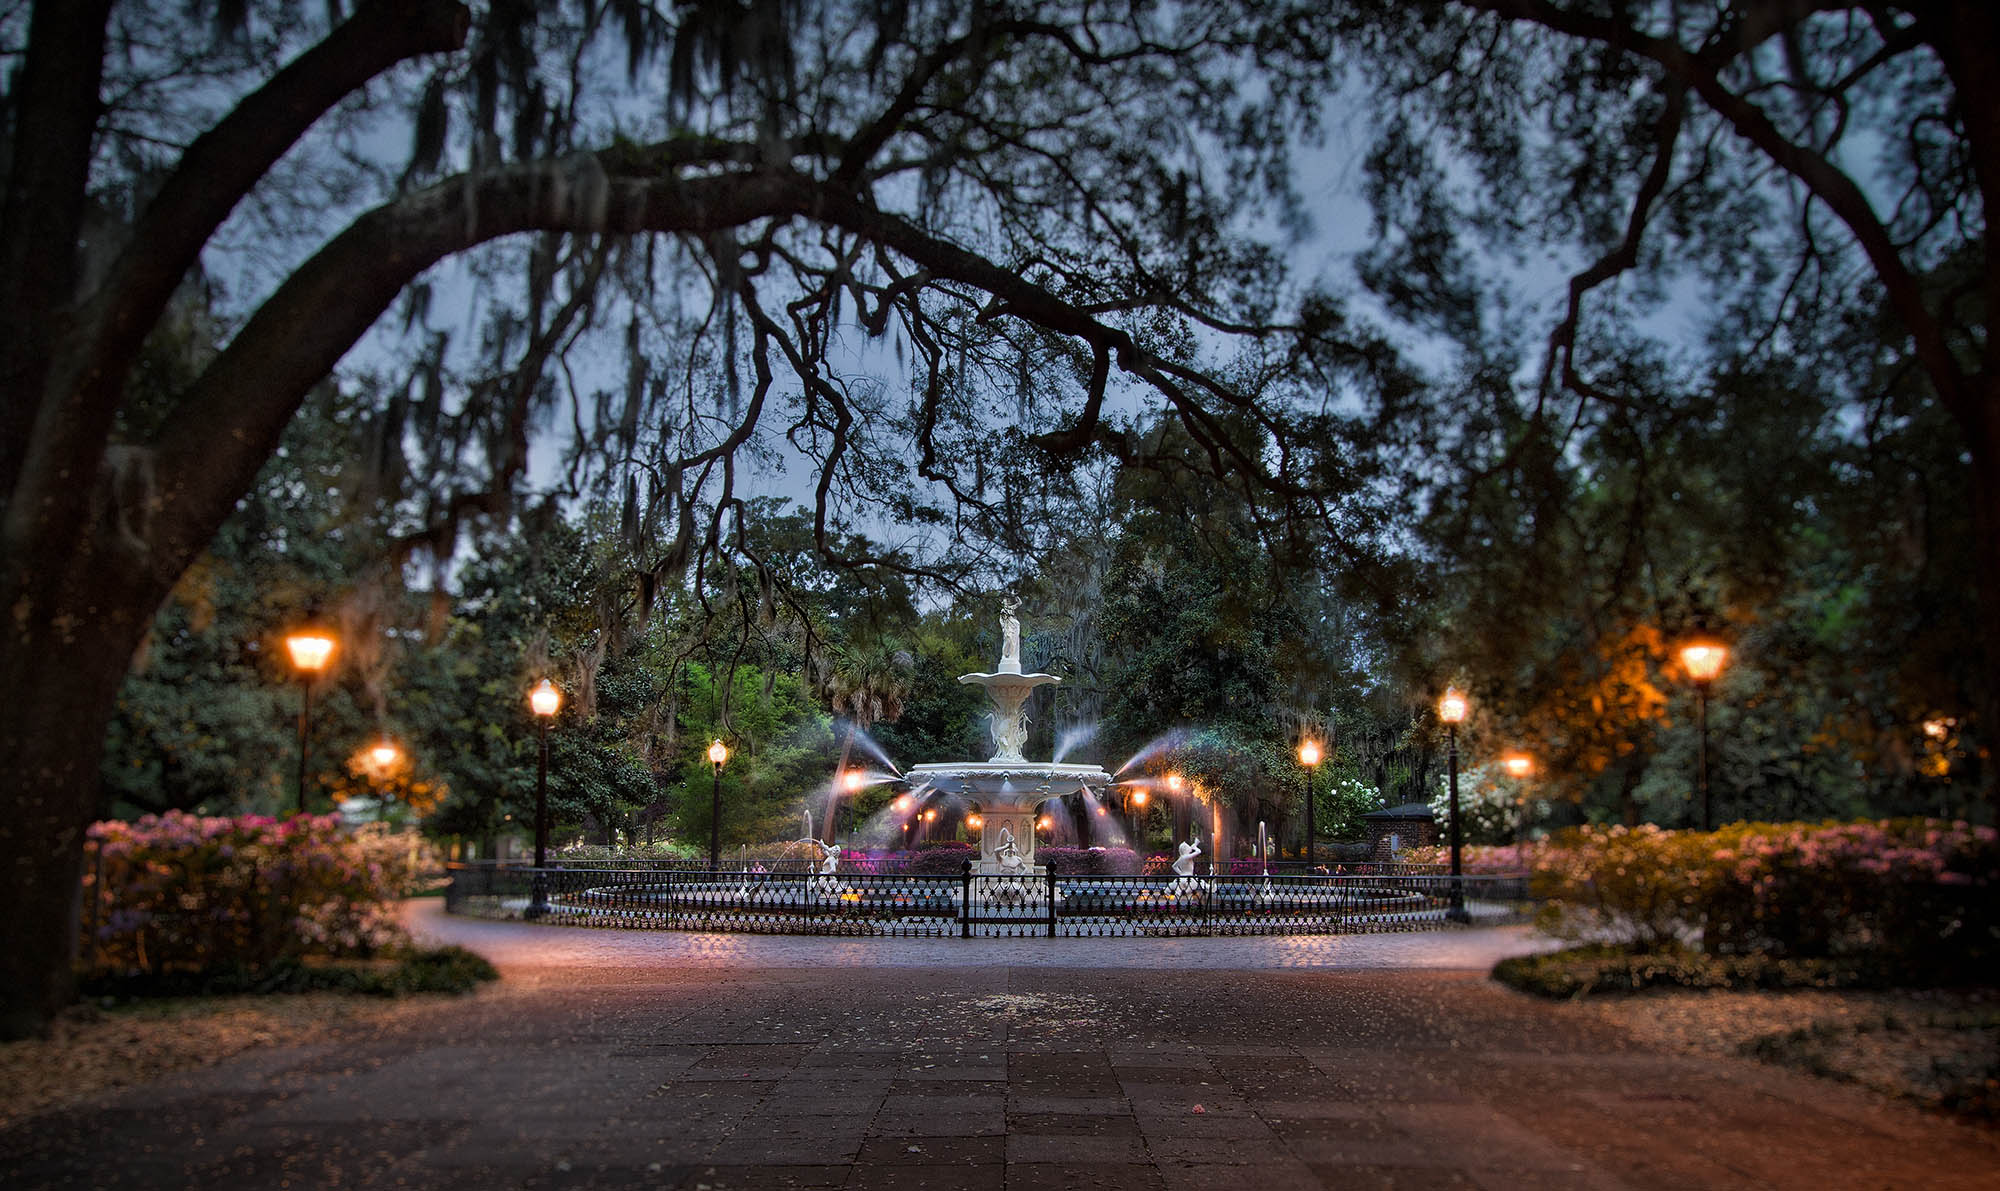 Fountain in the Park at night.